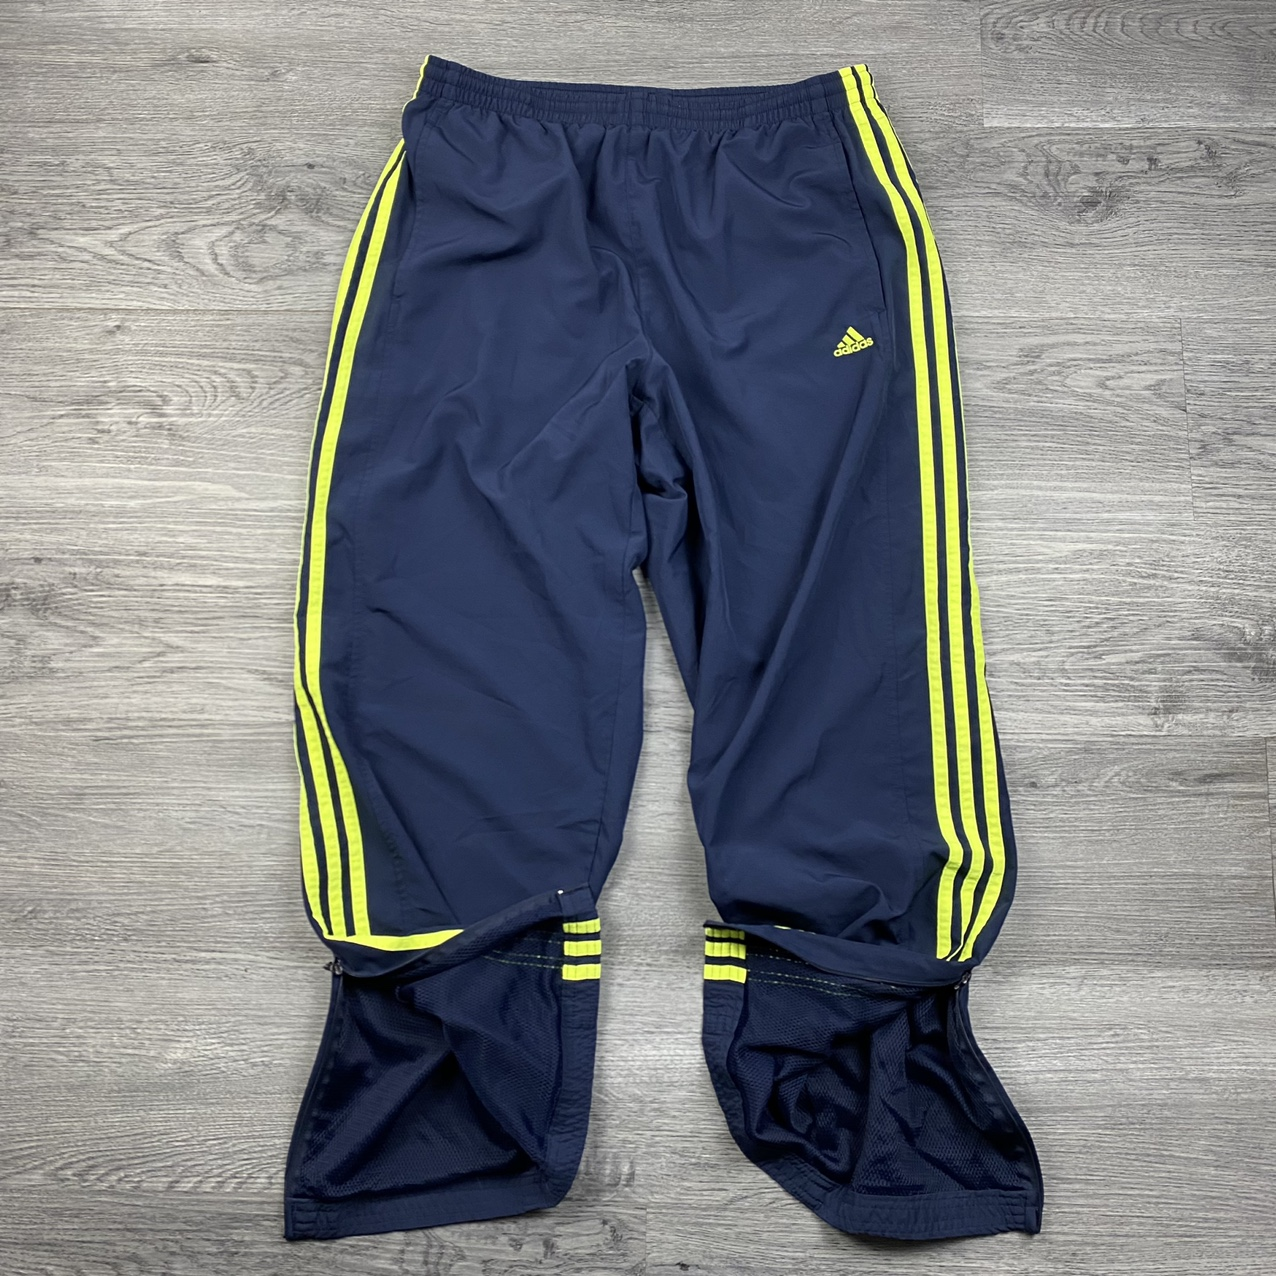 Product Image 1 - Adidas Neon Striped Track Pants  •2005 •Neon